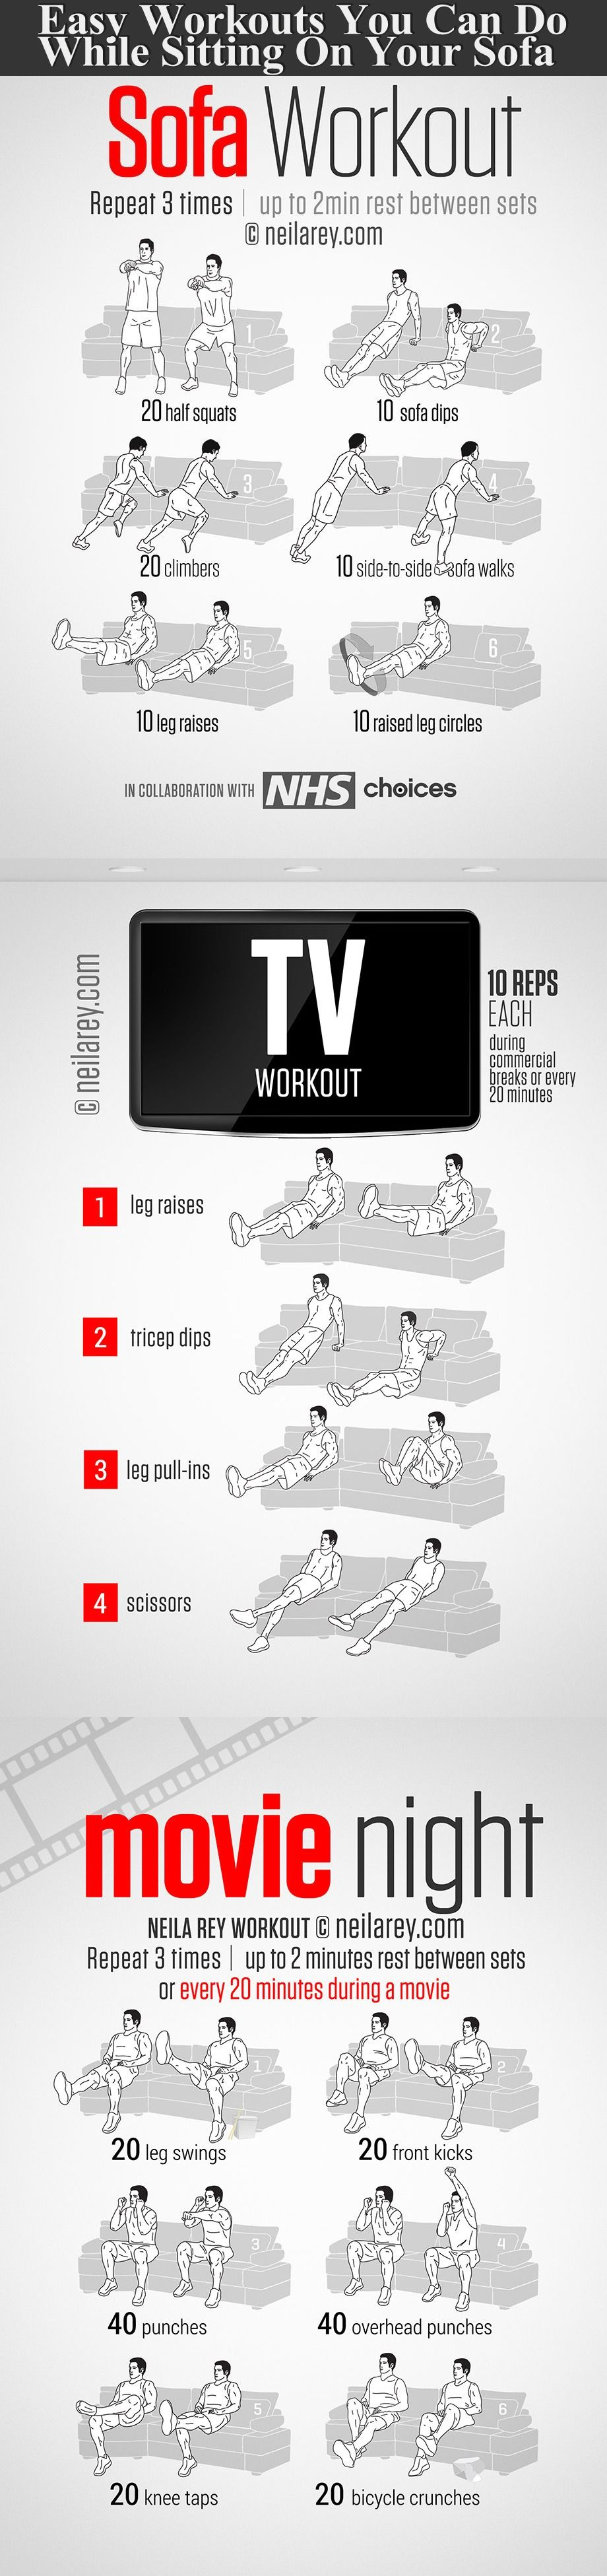 Easy Workouts You Can Do While Sitting On Your Sofa